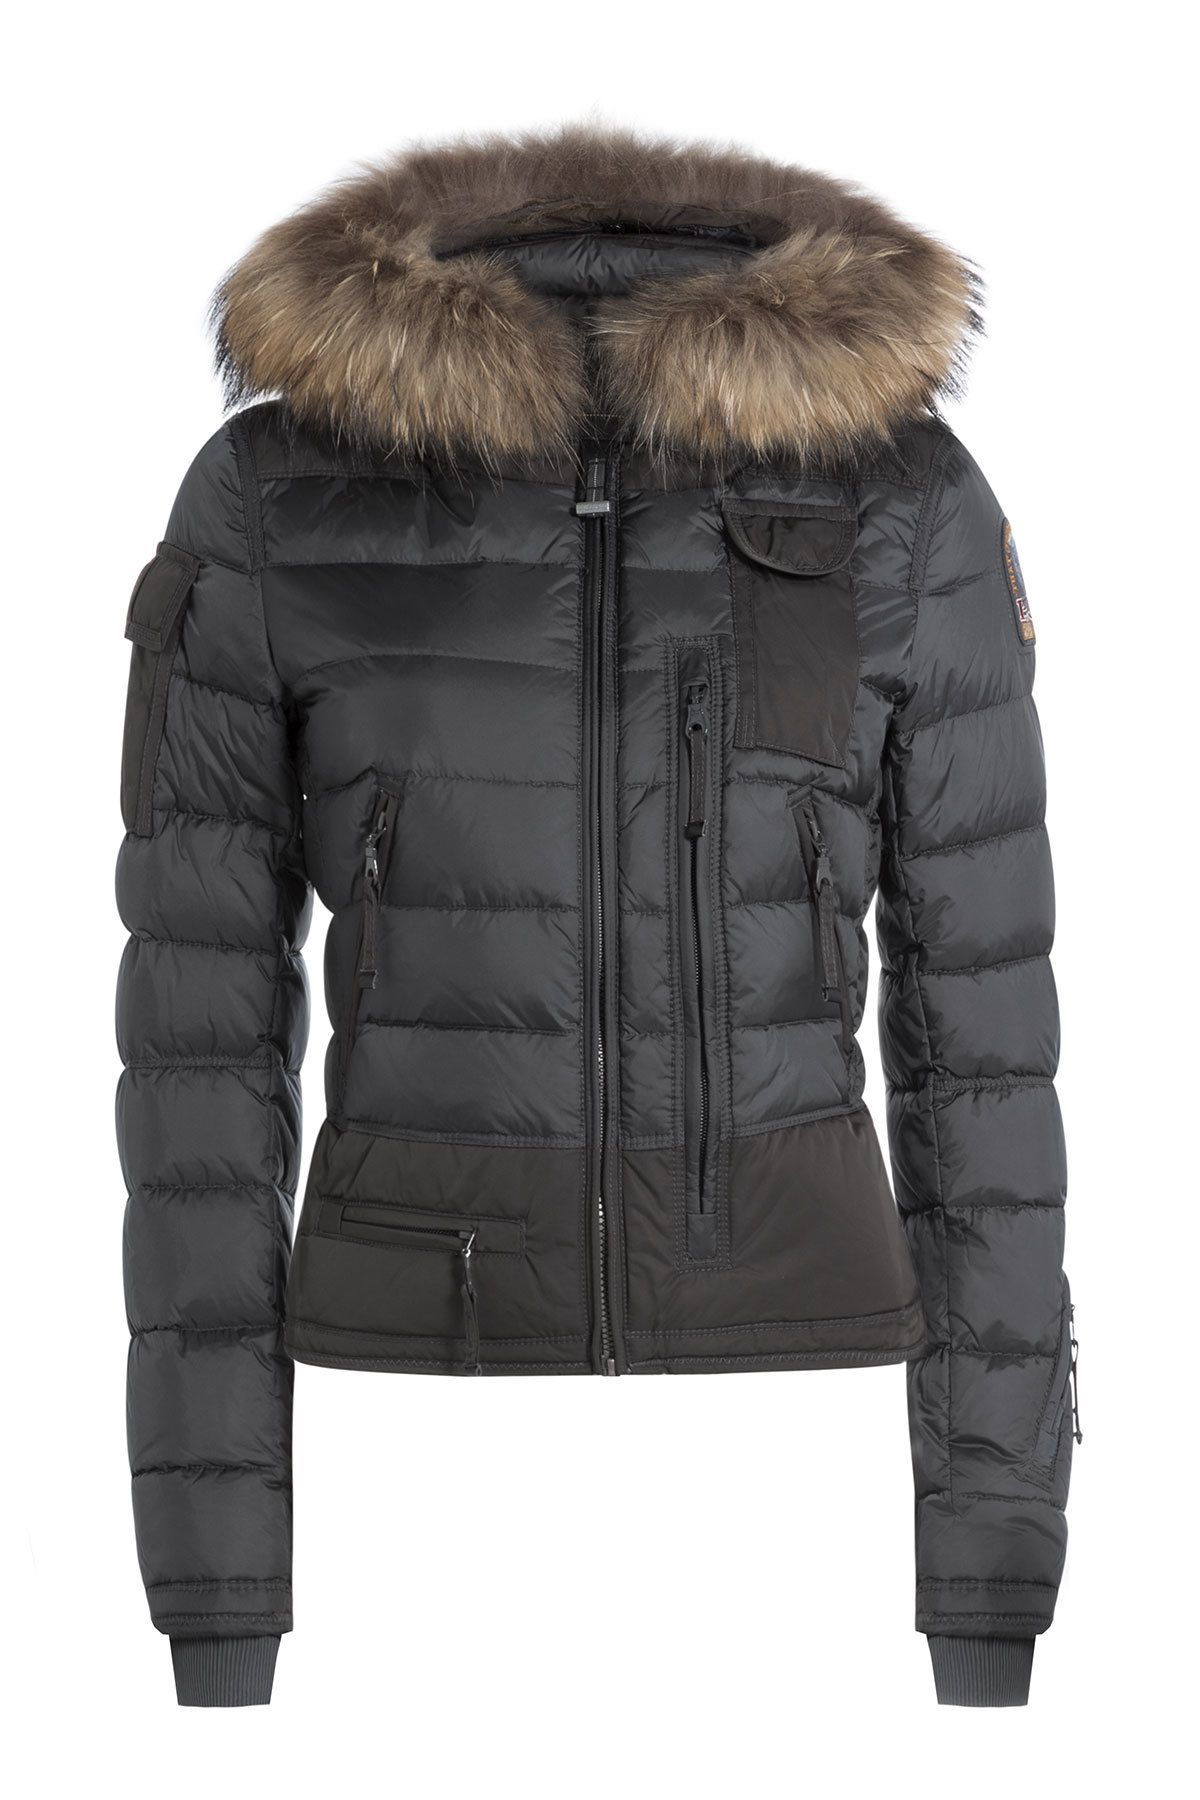 Skimaster Down Jacket with Fur-Trimmed Hood - Parajumpers